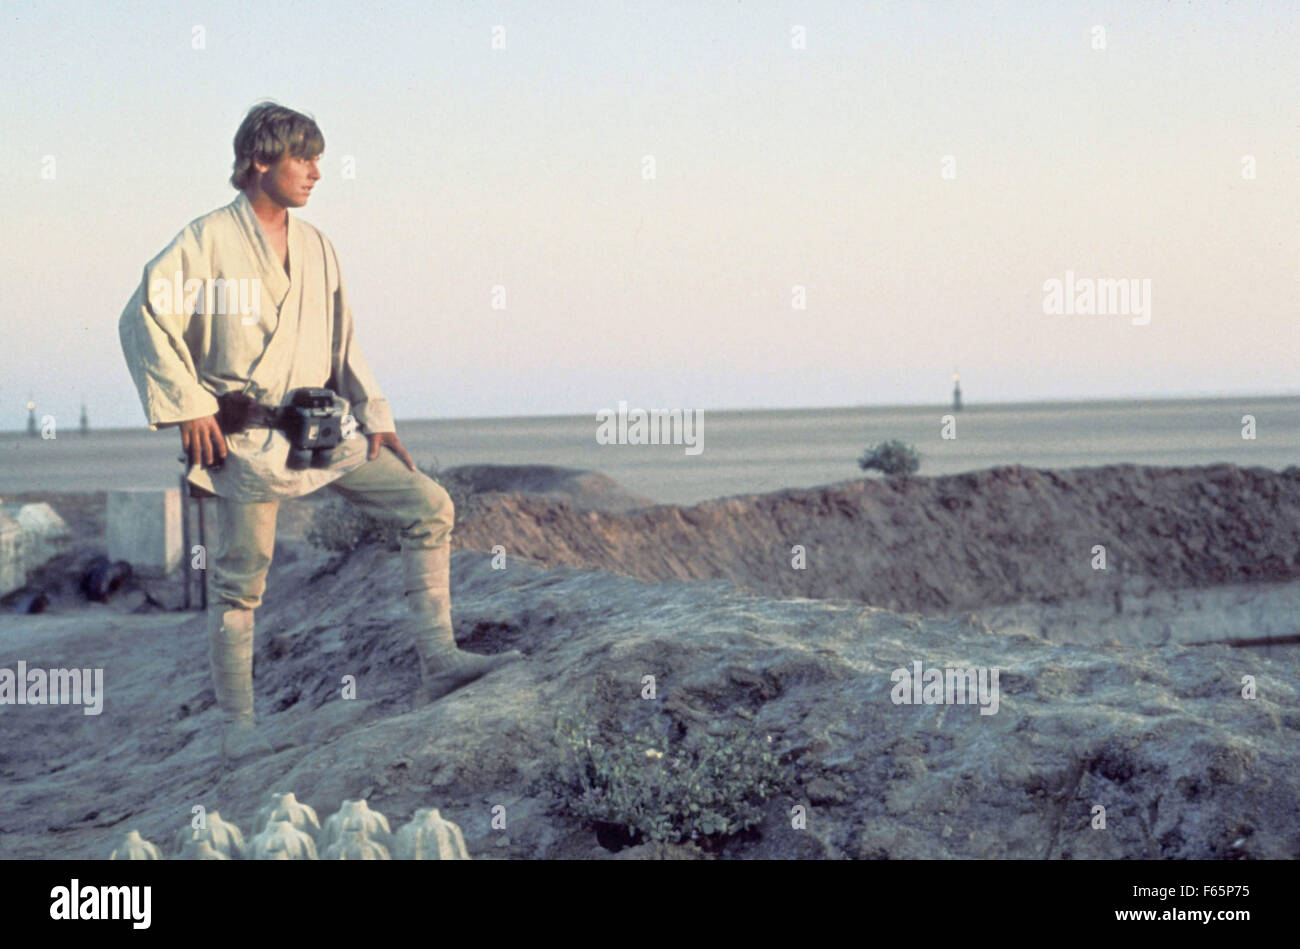 Star Wars: Episode IV - A New Hope Year : 1977 USA Director : George Lucas Mark Hamill - Stock Image